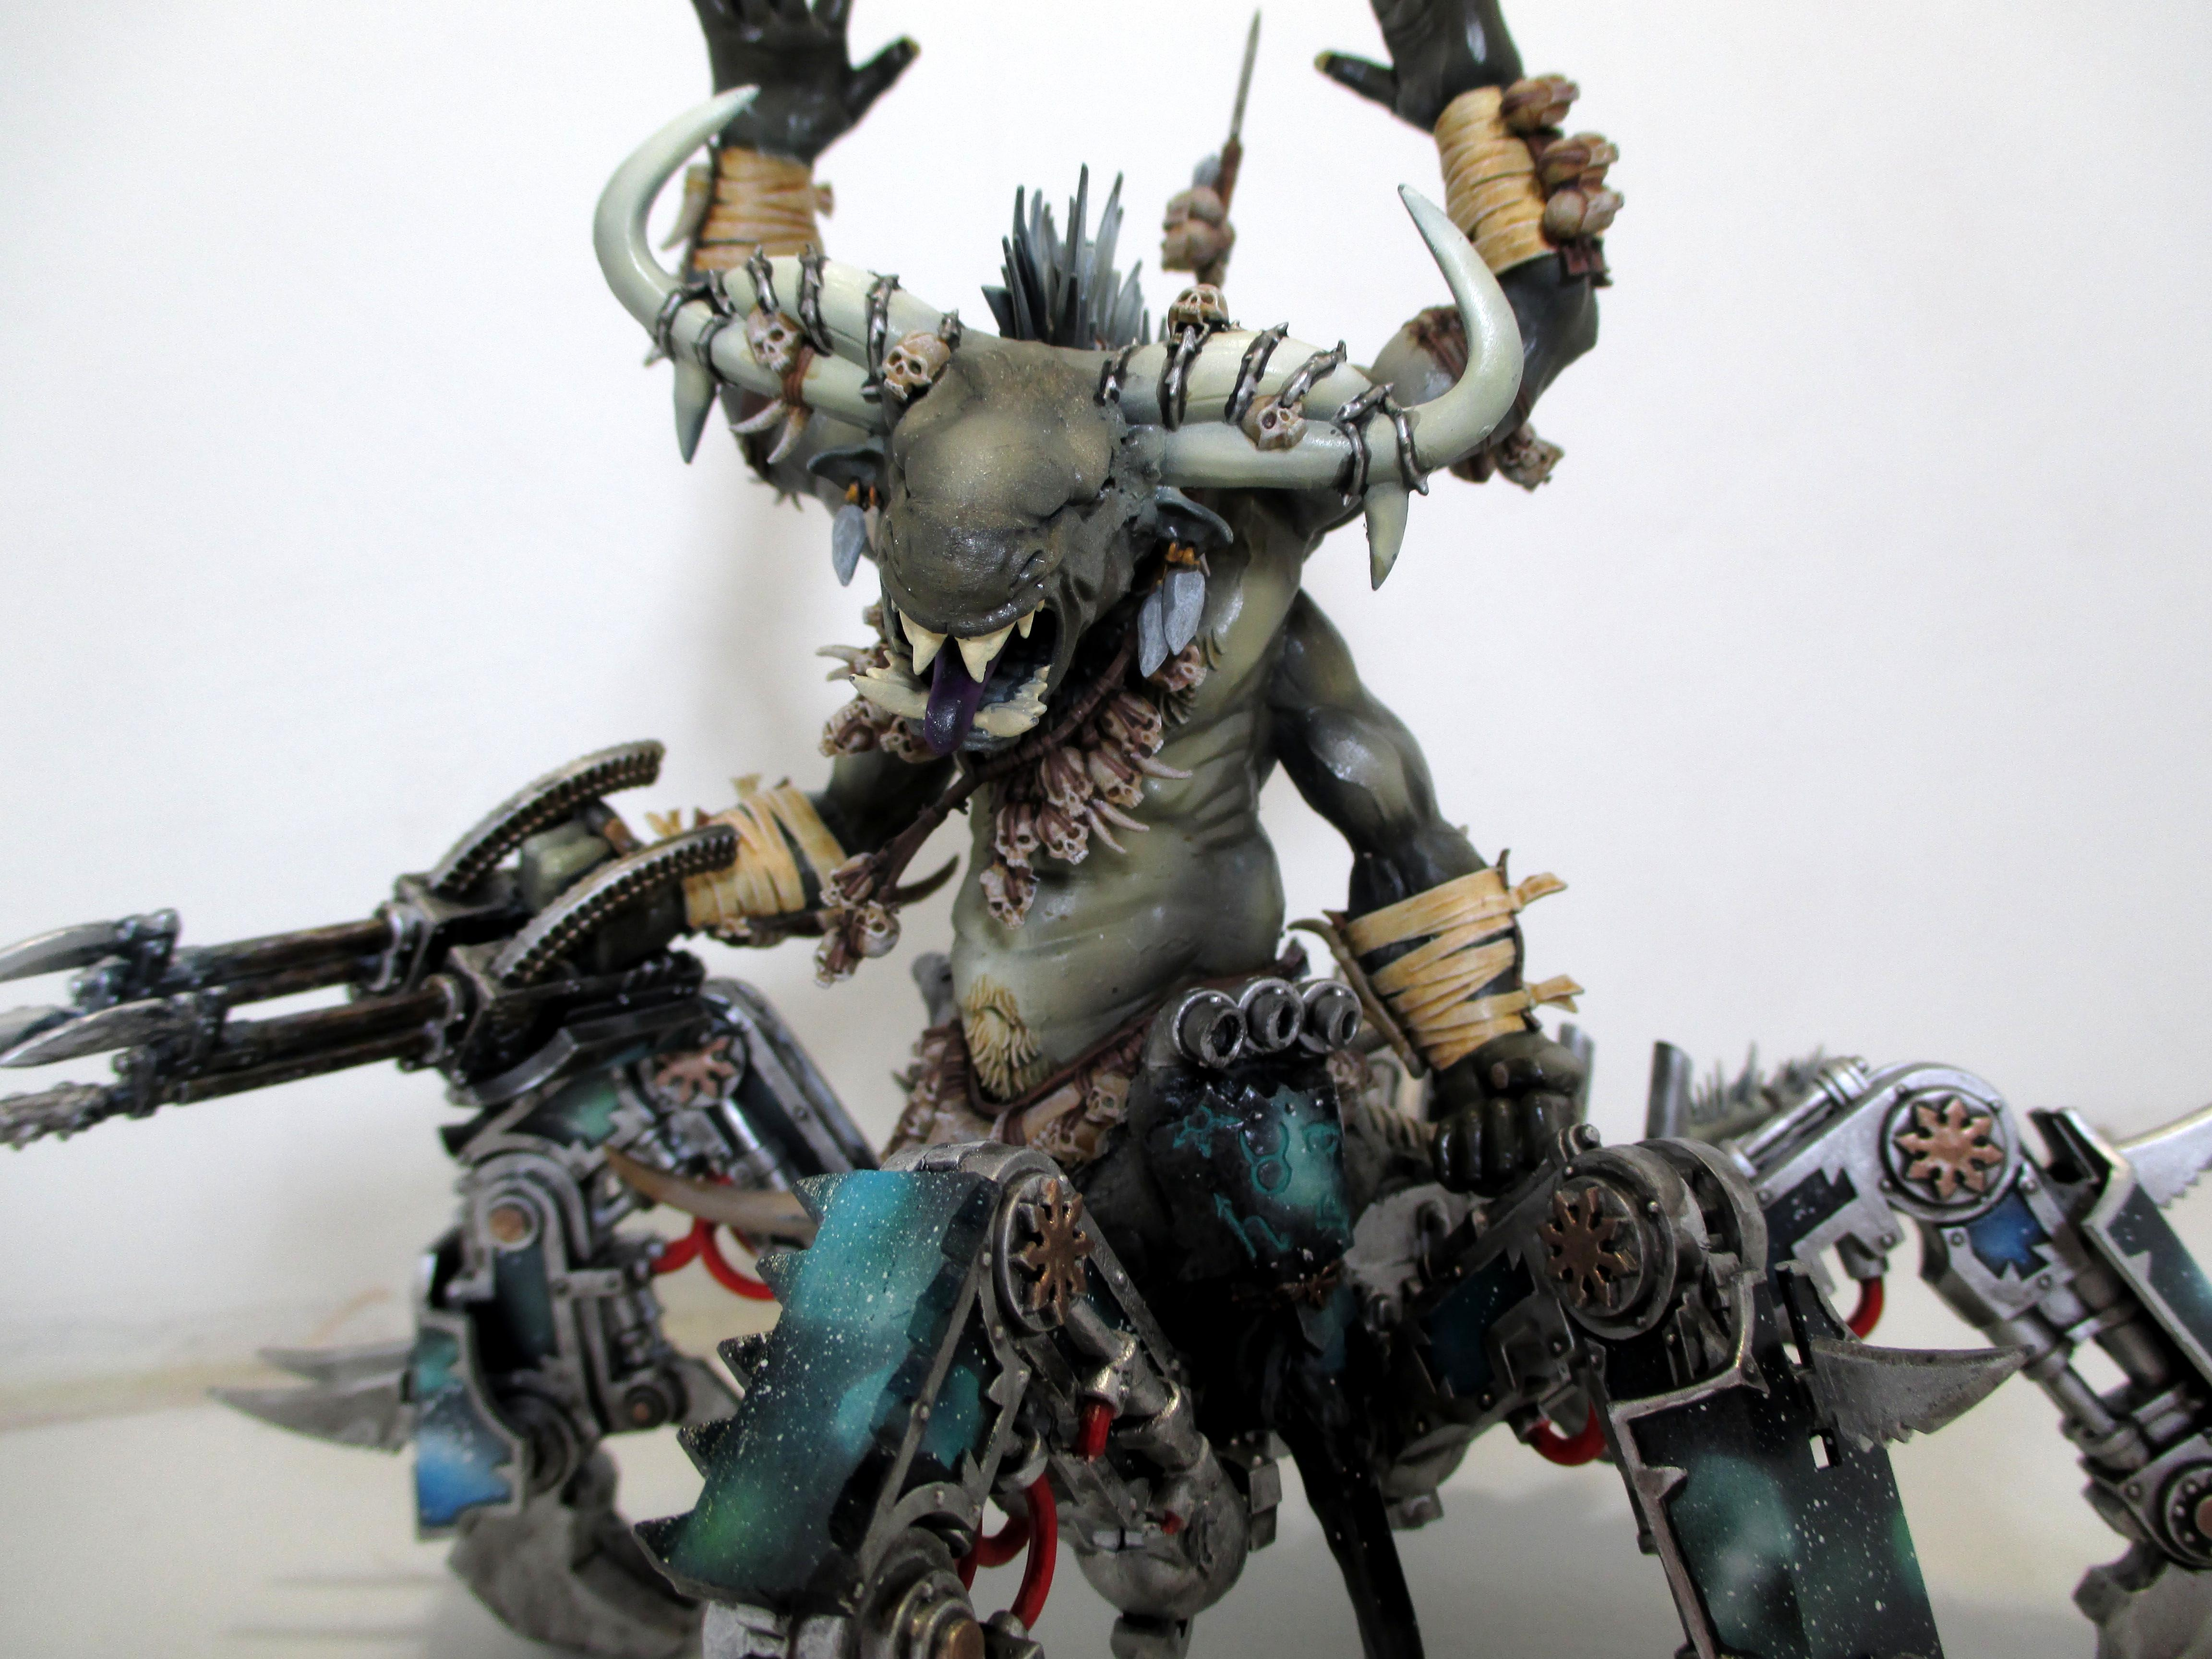 Airbrush, Cd, Chaos, Conversion, Soul Grinder, Work In Progress